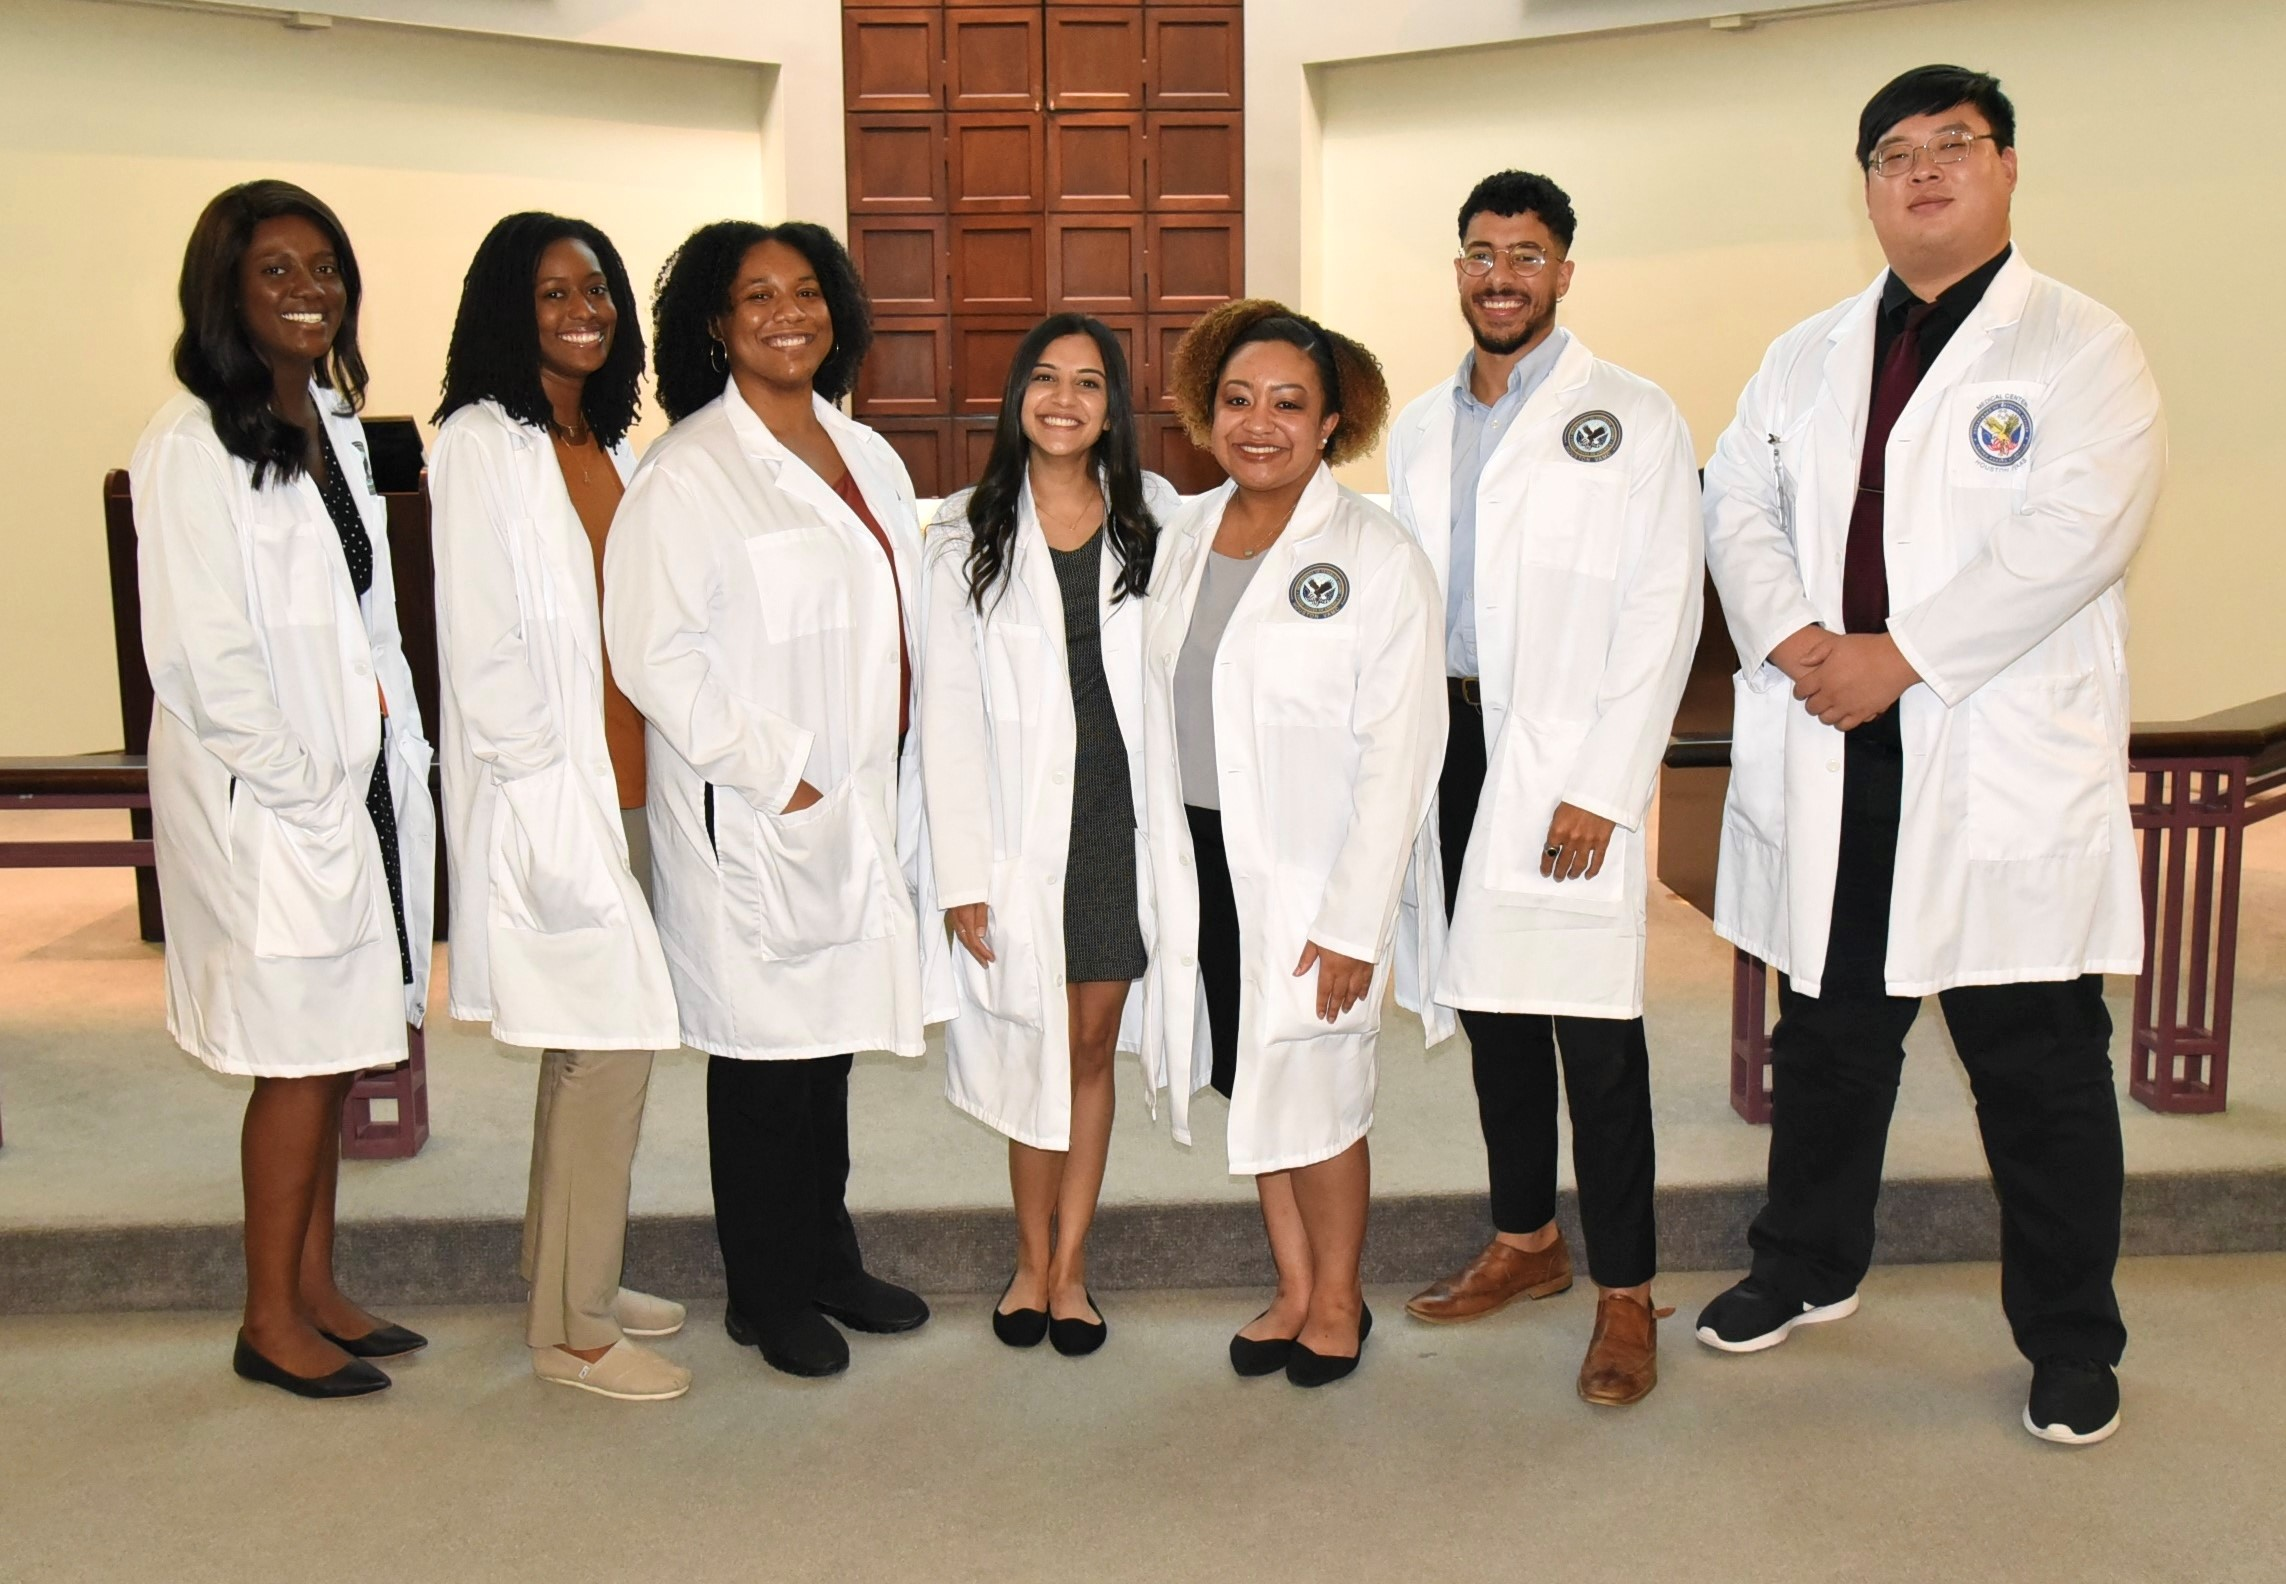 PGY1 and PGY2 Pharmacy Residents